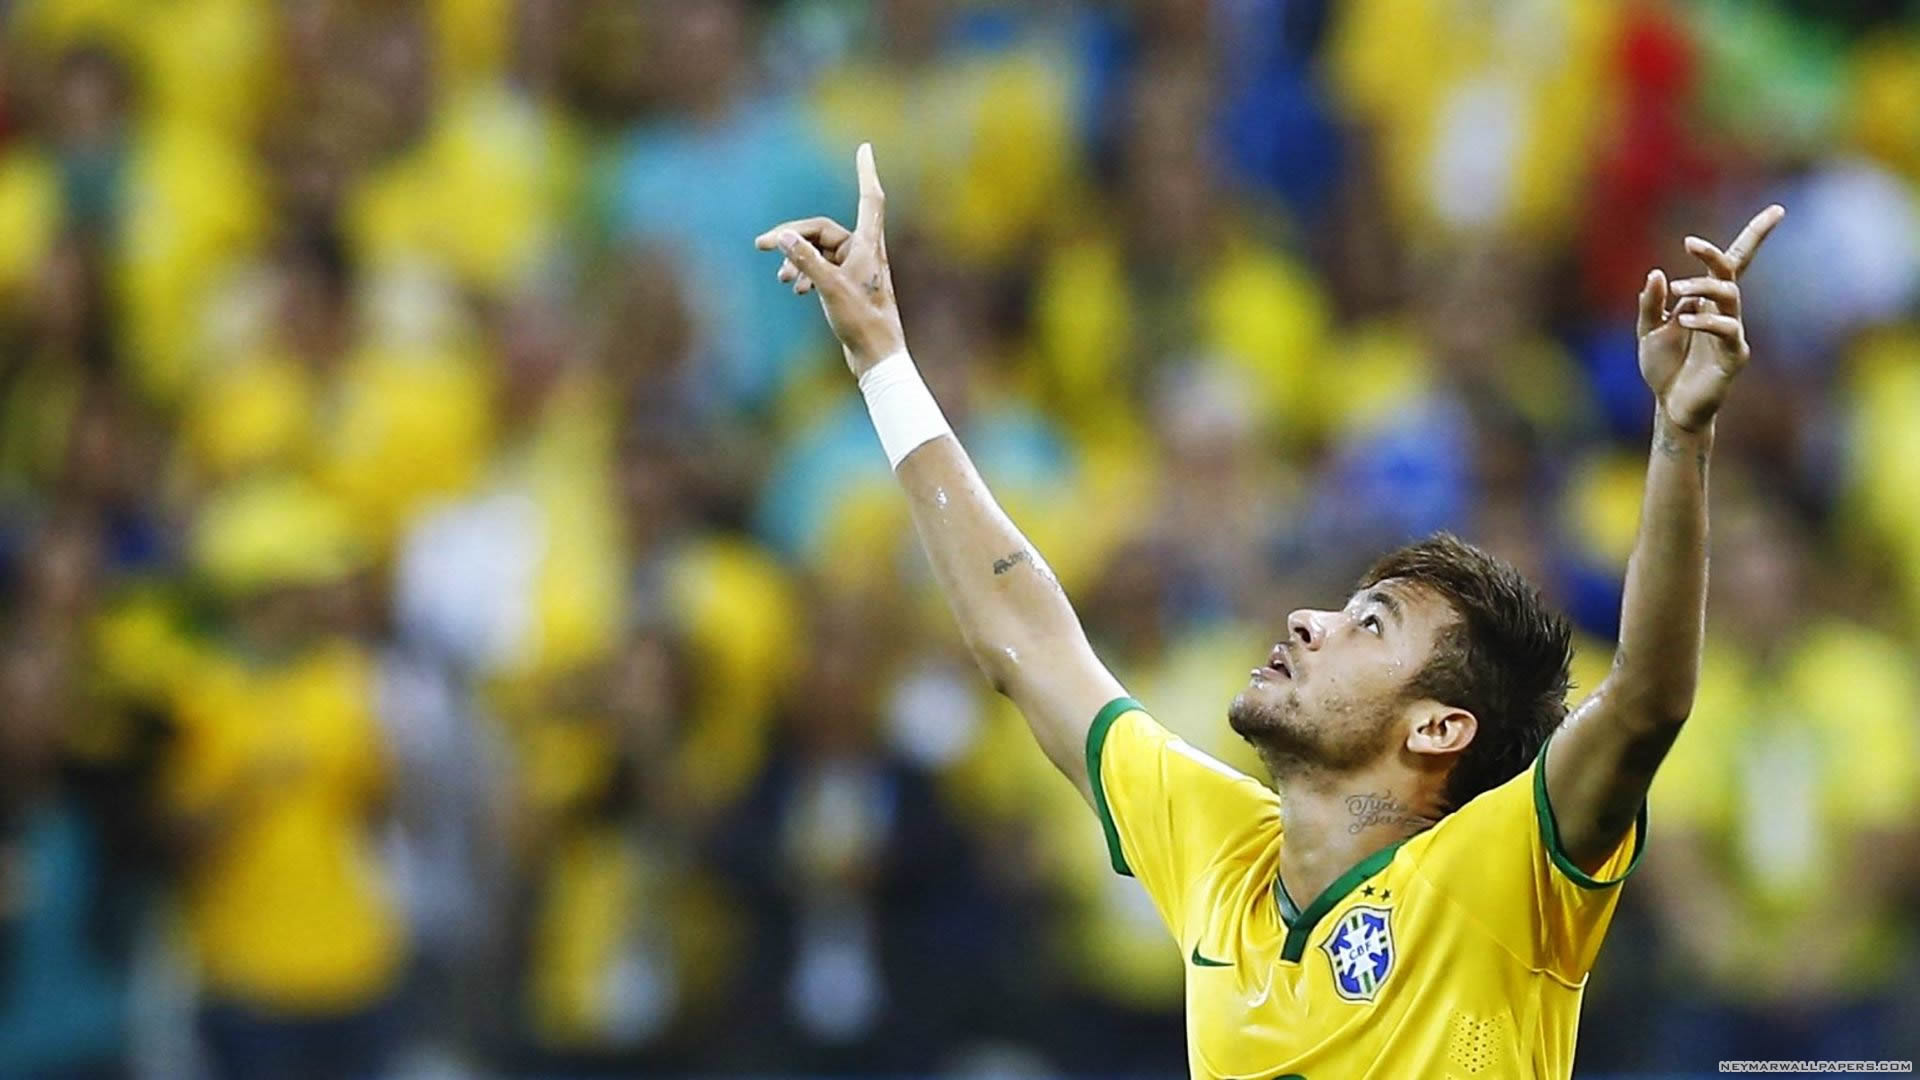 Hd wallpaper neymar - Neymar Arms Up Wallpaper